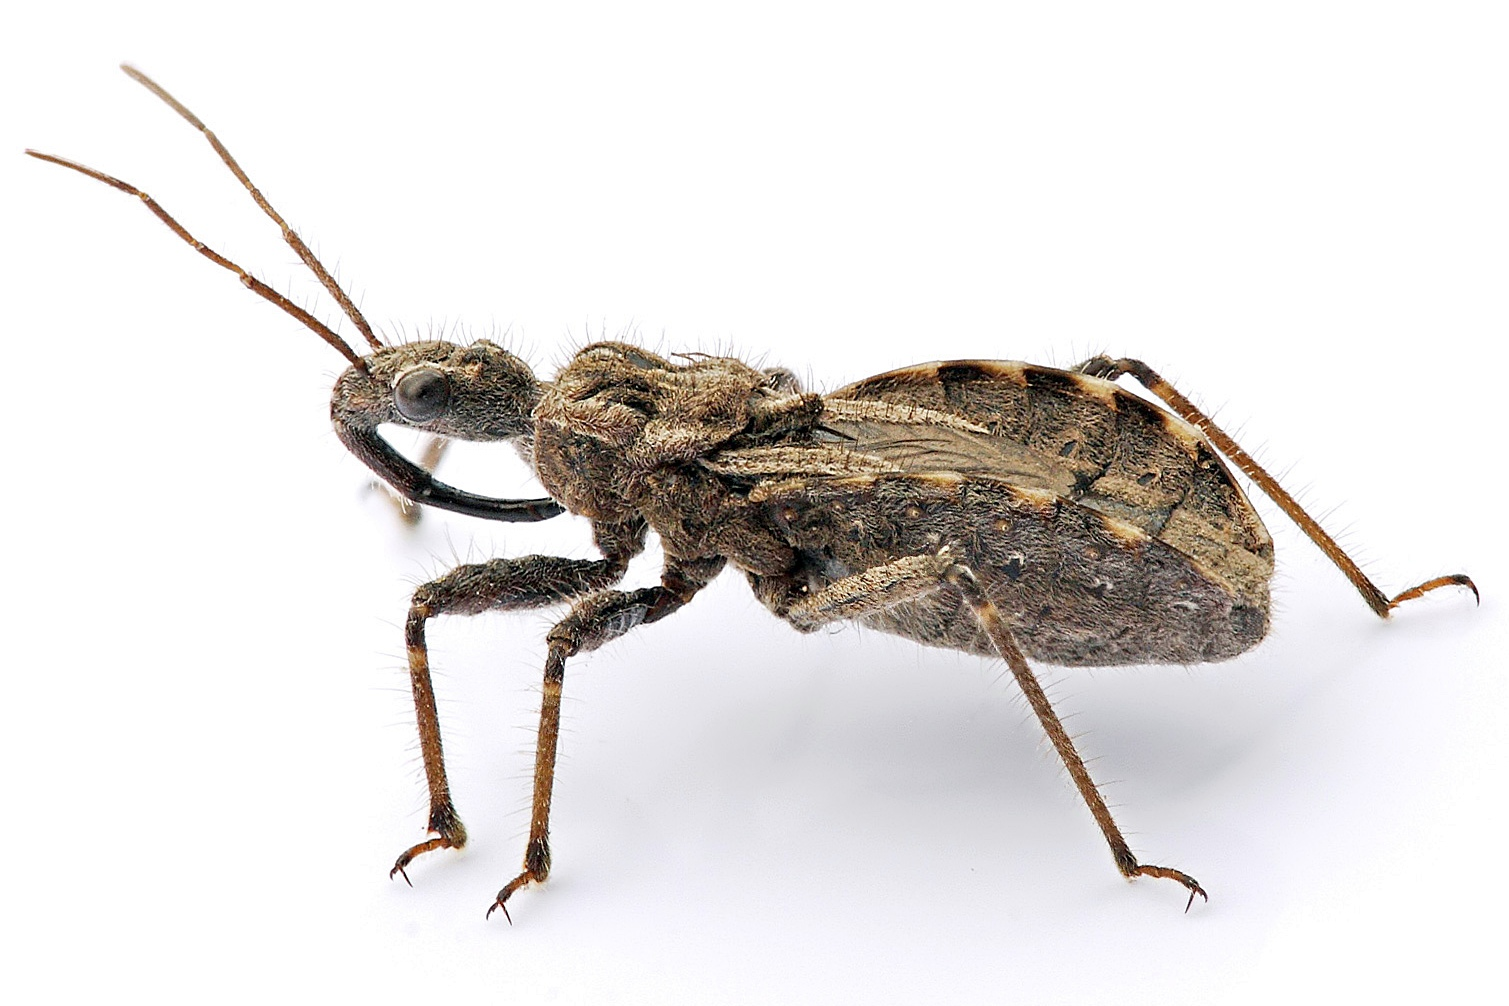 https://upload.wikimedia.org/wikipedia/commons/9/97/Assassin_bug_aug08_02.jpg